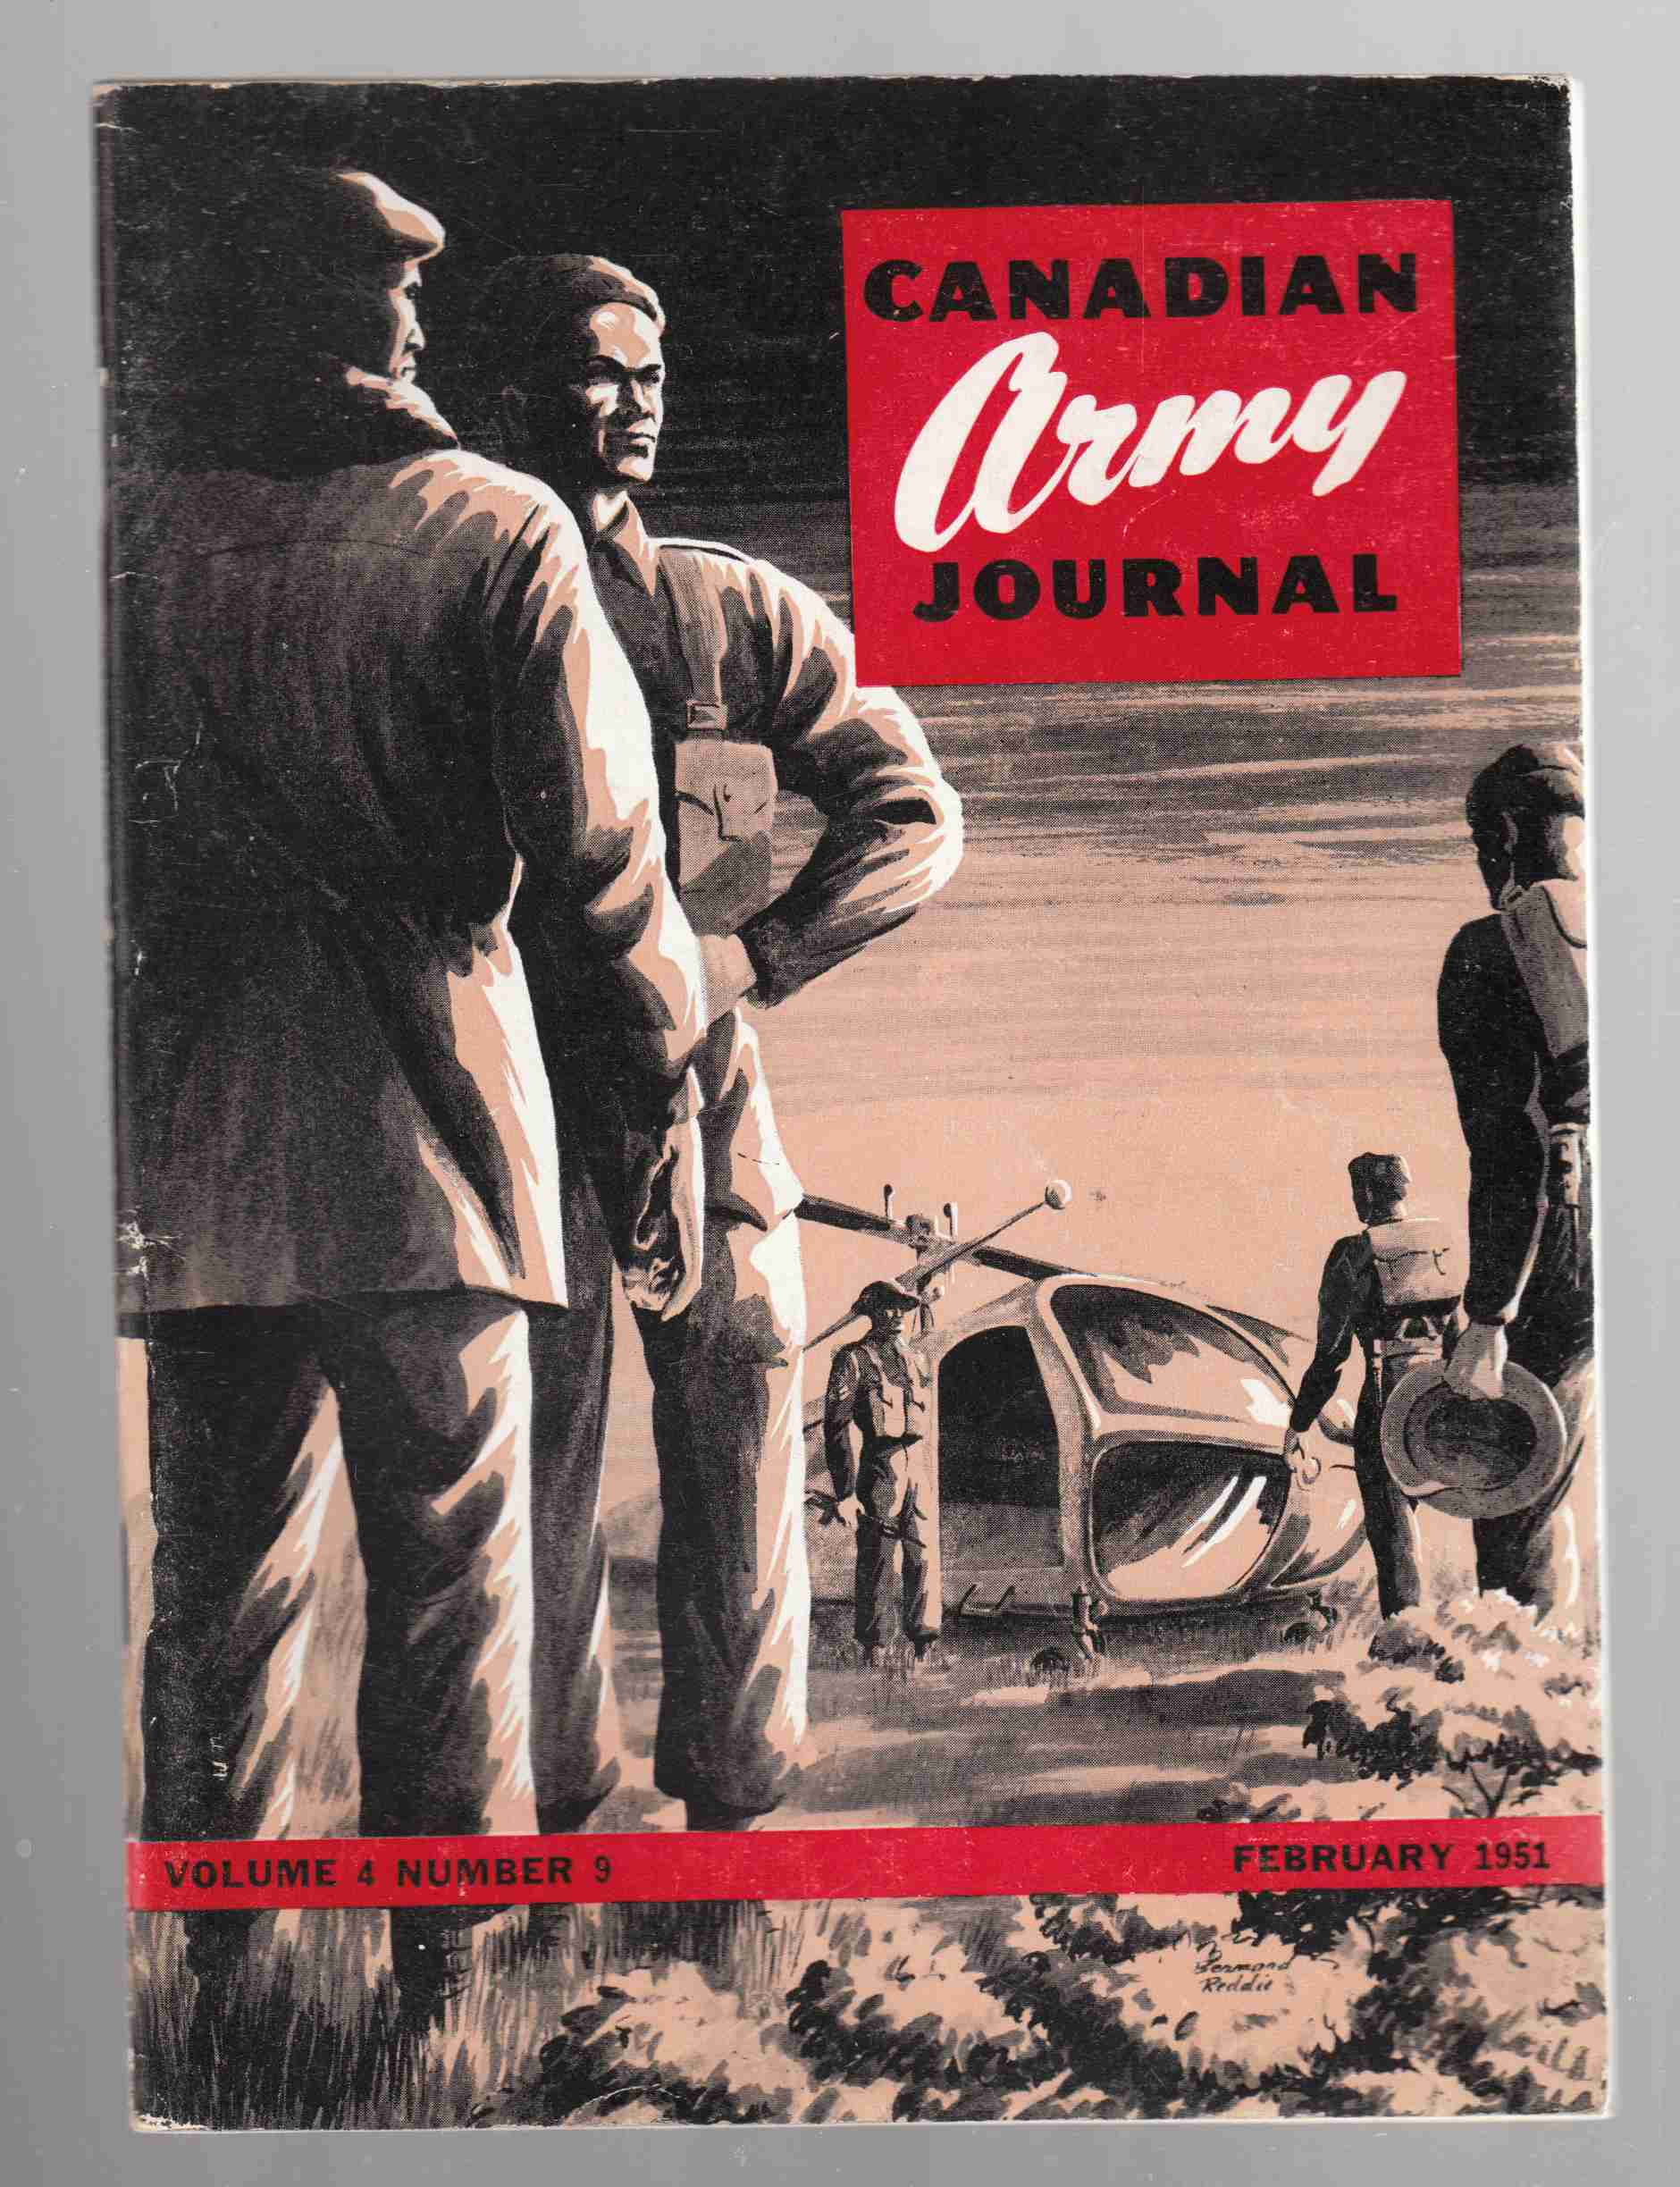 Image for Canadian Army Journal Volume 4 Number 9 February 1951